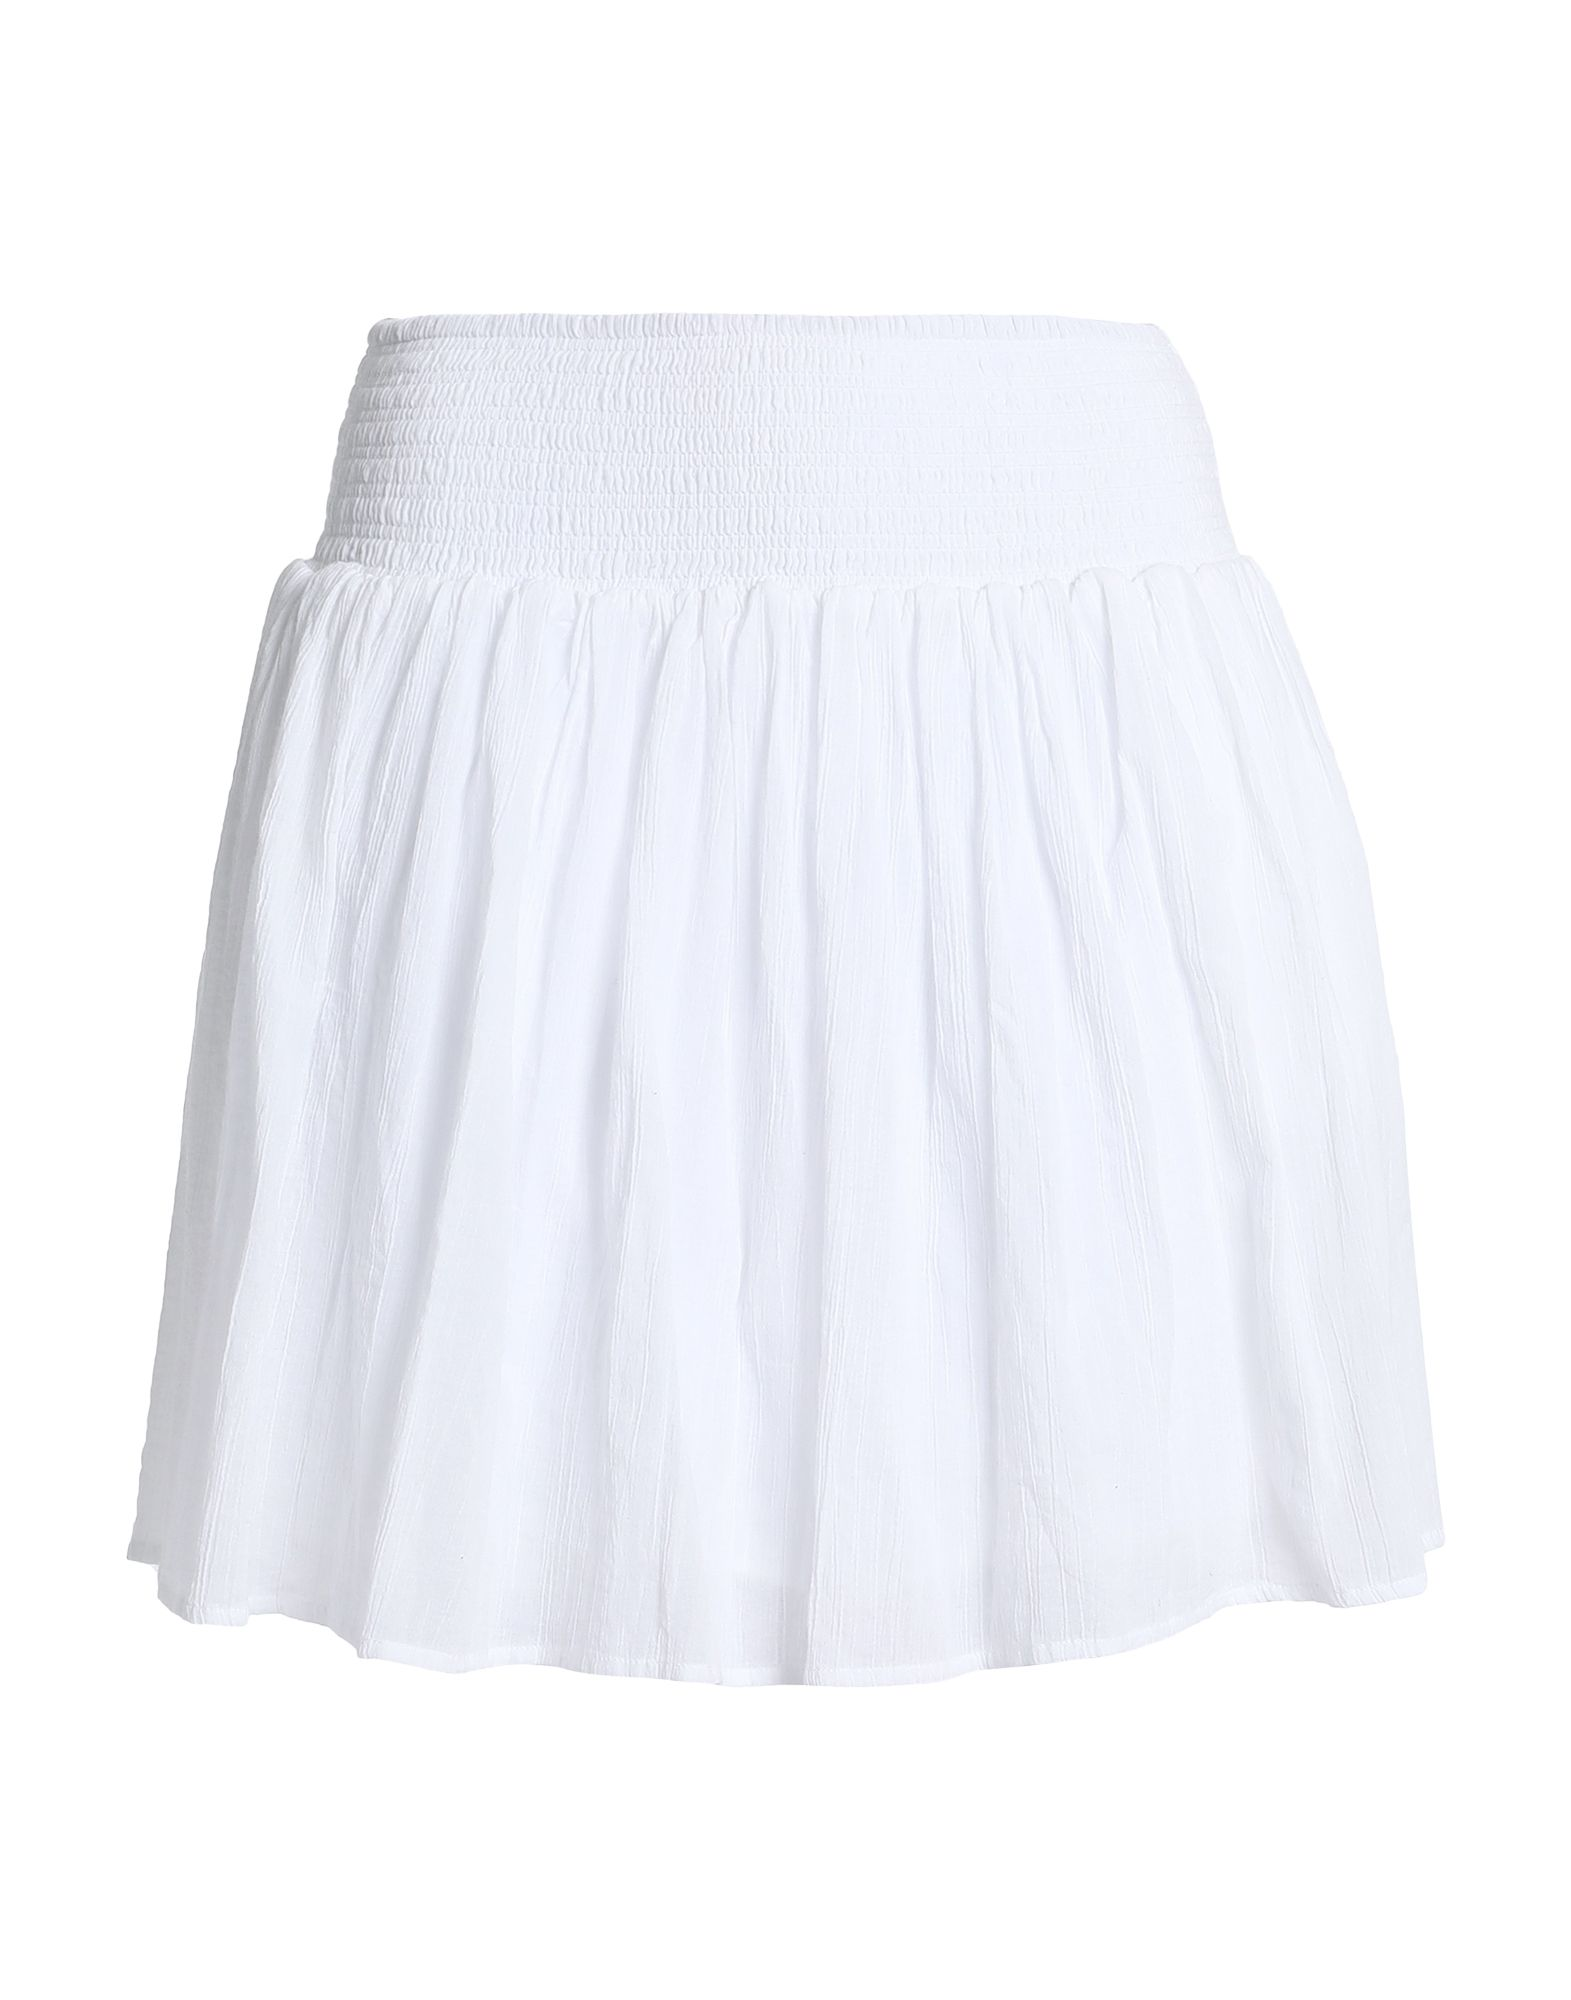 James Perse Skirts KNEE LENGTH SKIRTS